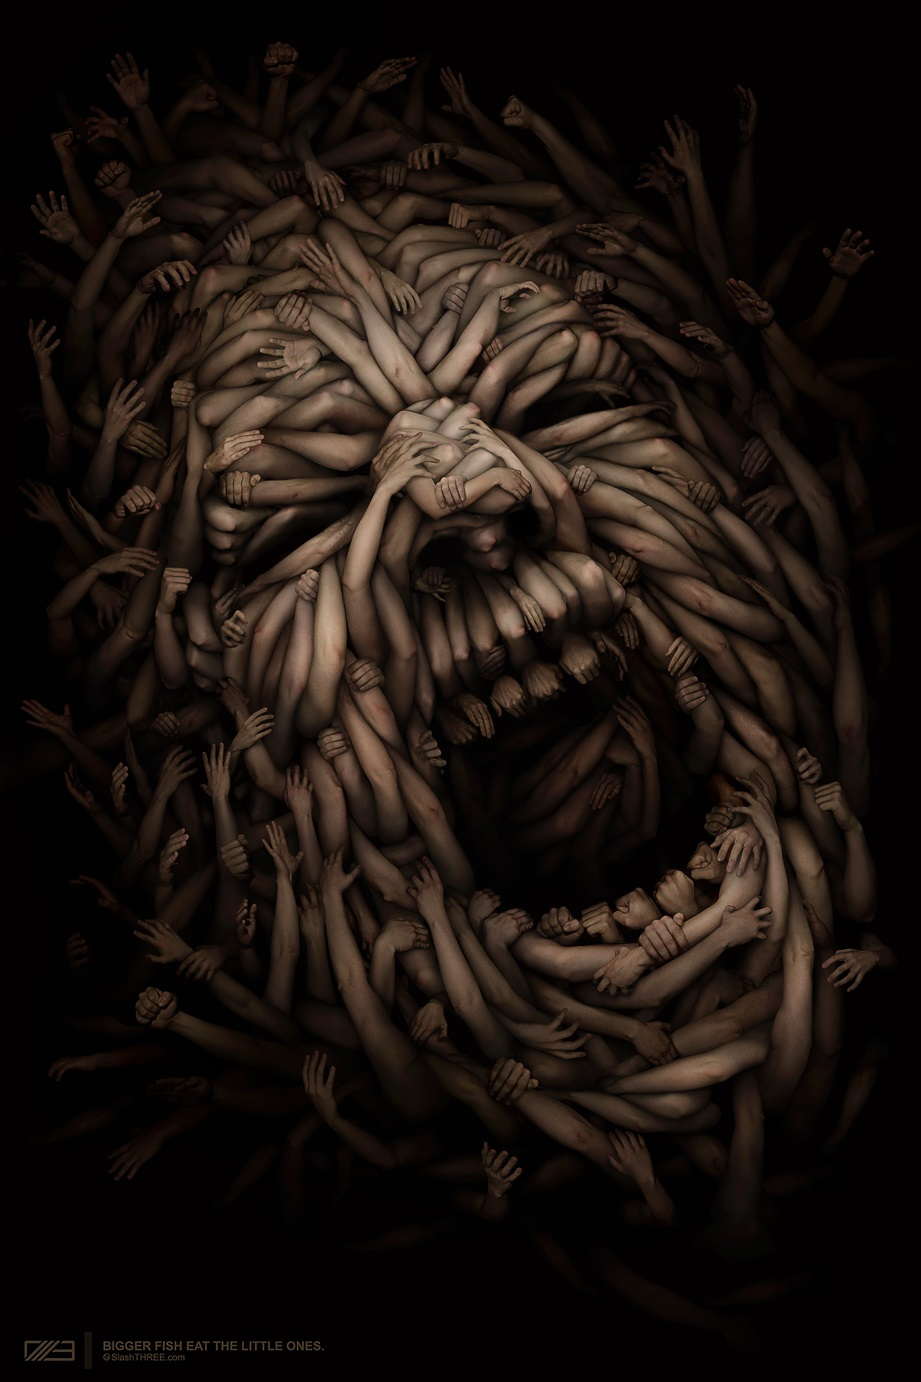 Gloom: Scary paintings by a Russian artist Anton Semenov - 32